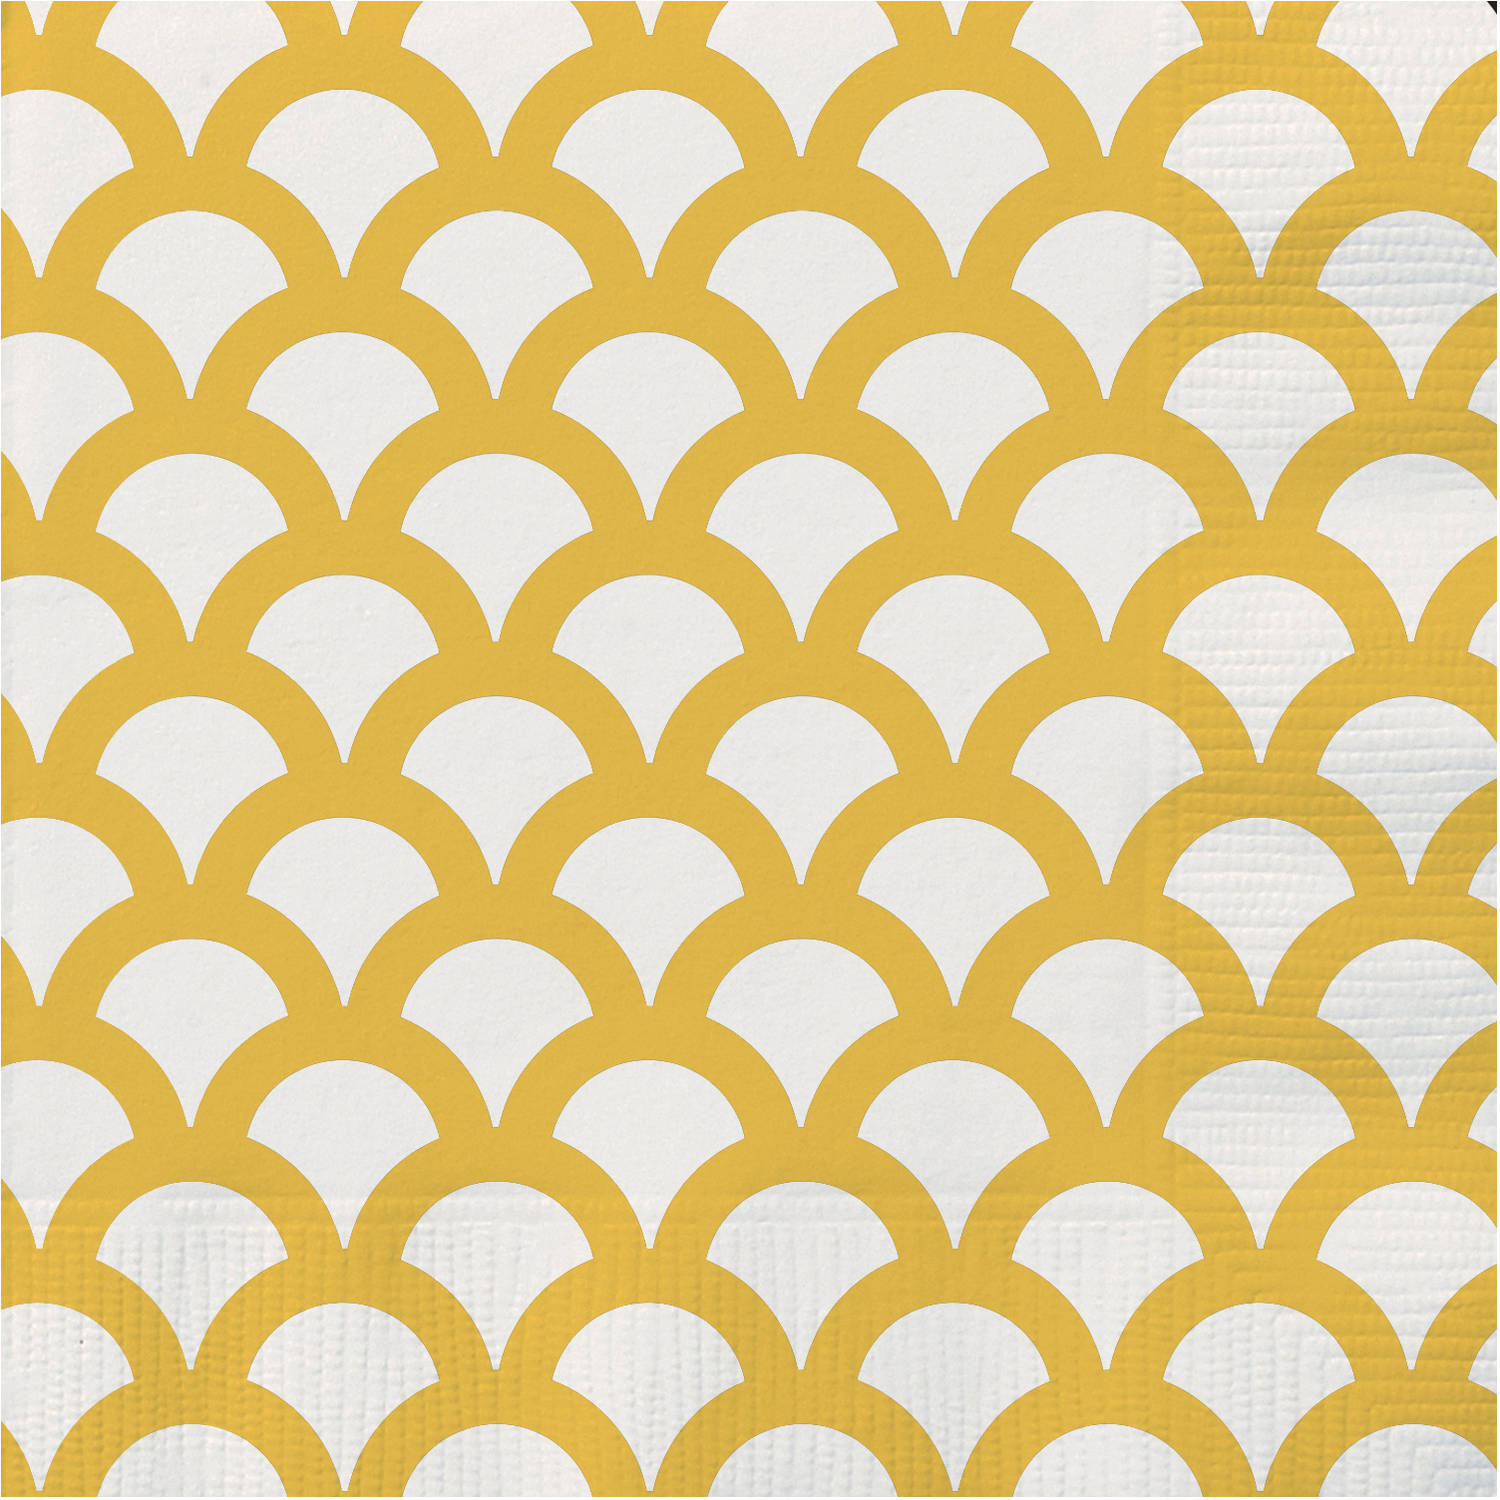 Yellow Scallop Beverage Napkins, 30-Count